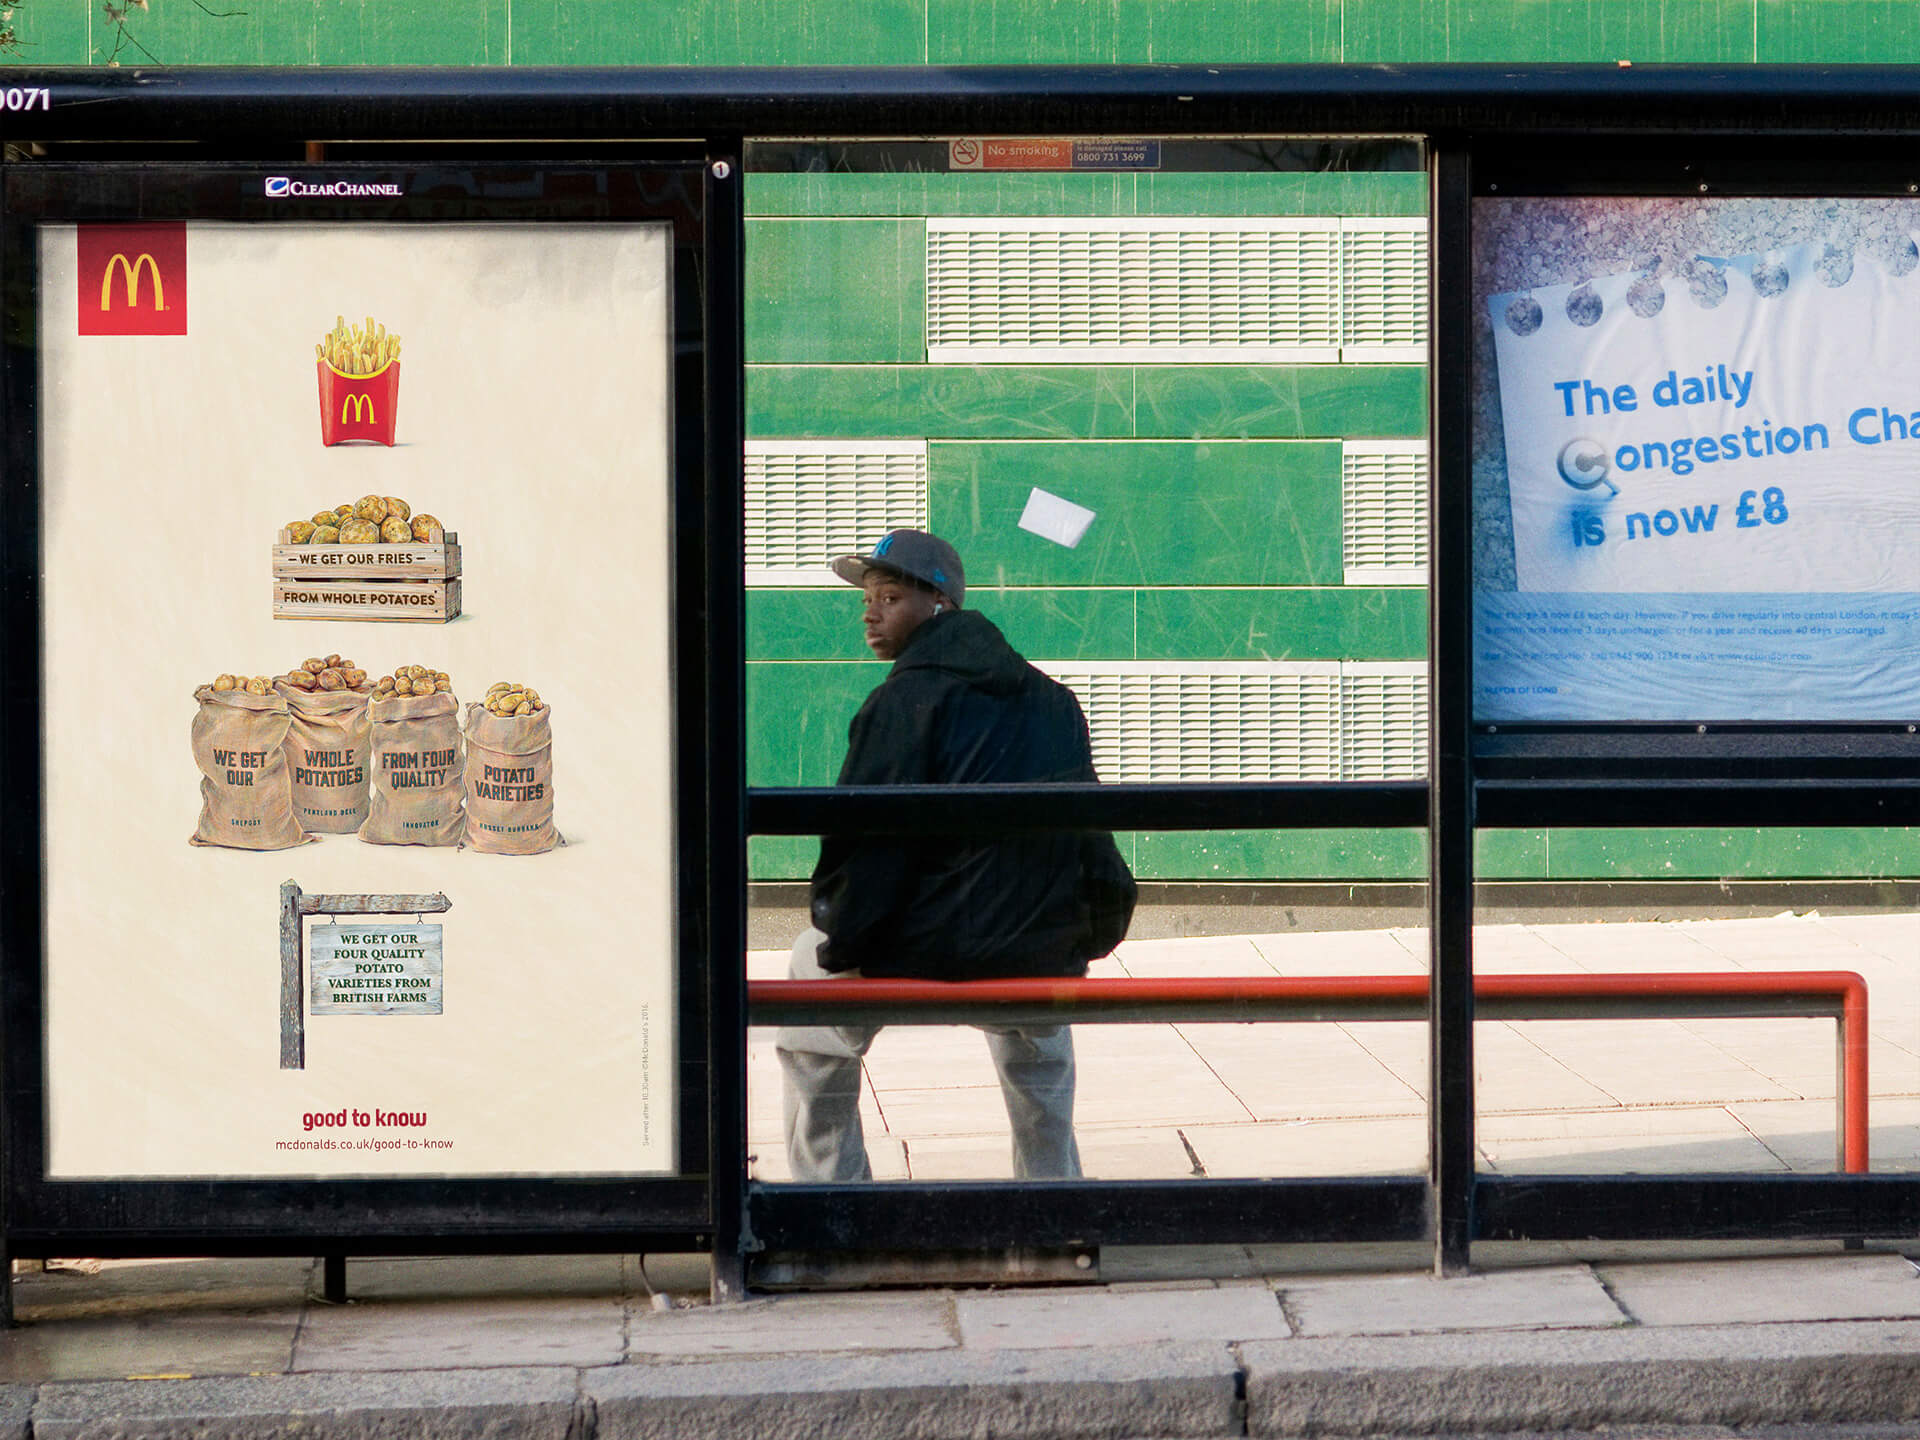 A teenage boy waits at a bus stop displaying a Congestion Charge poster on the Harrow Road West London